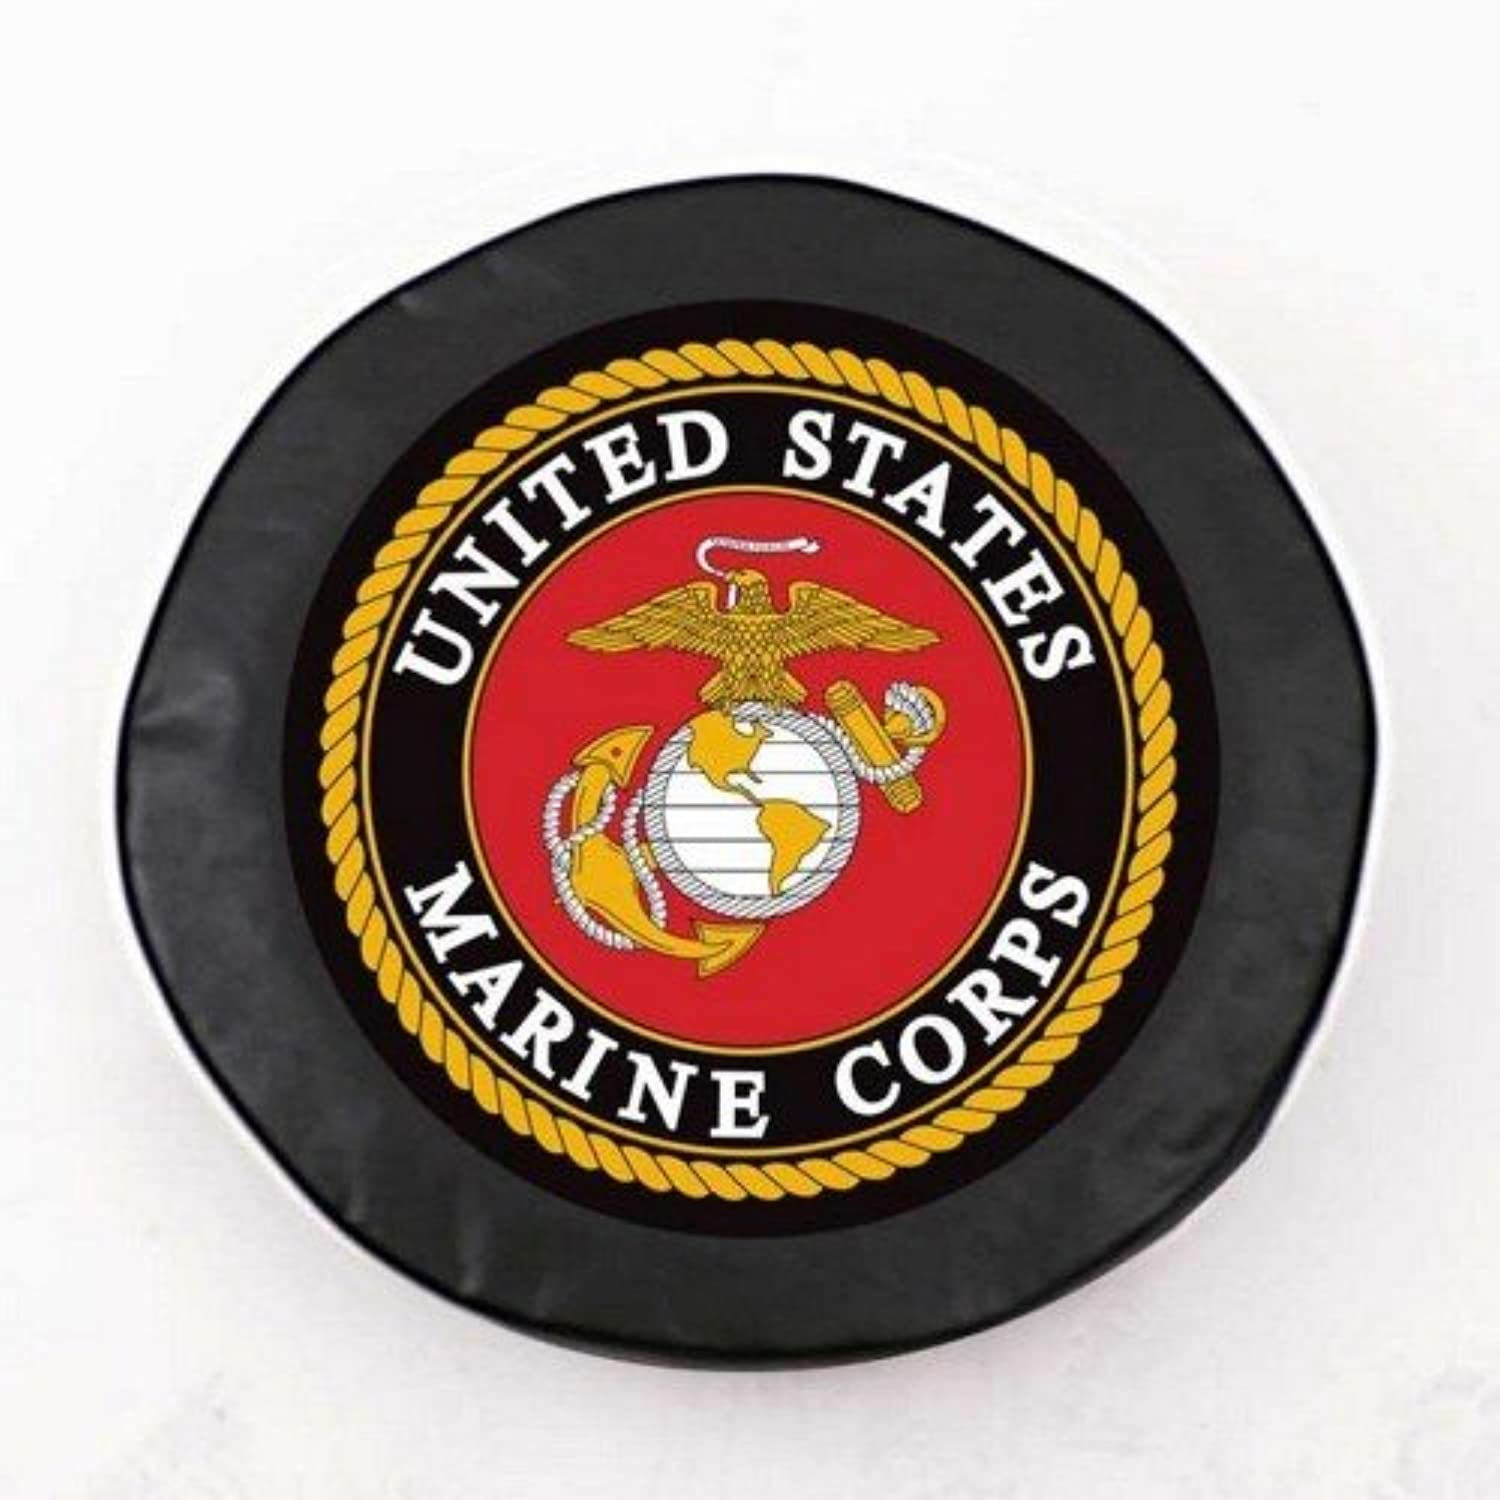 United States Marine Corps Black Tire Cover, Large